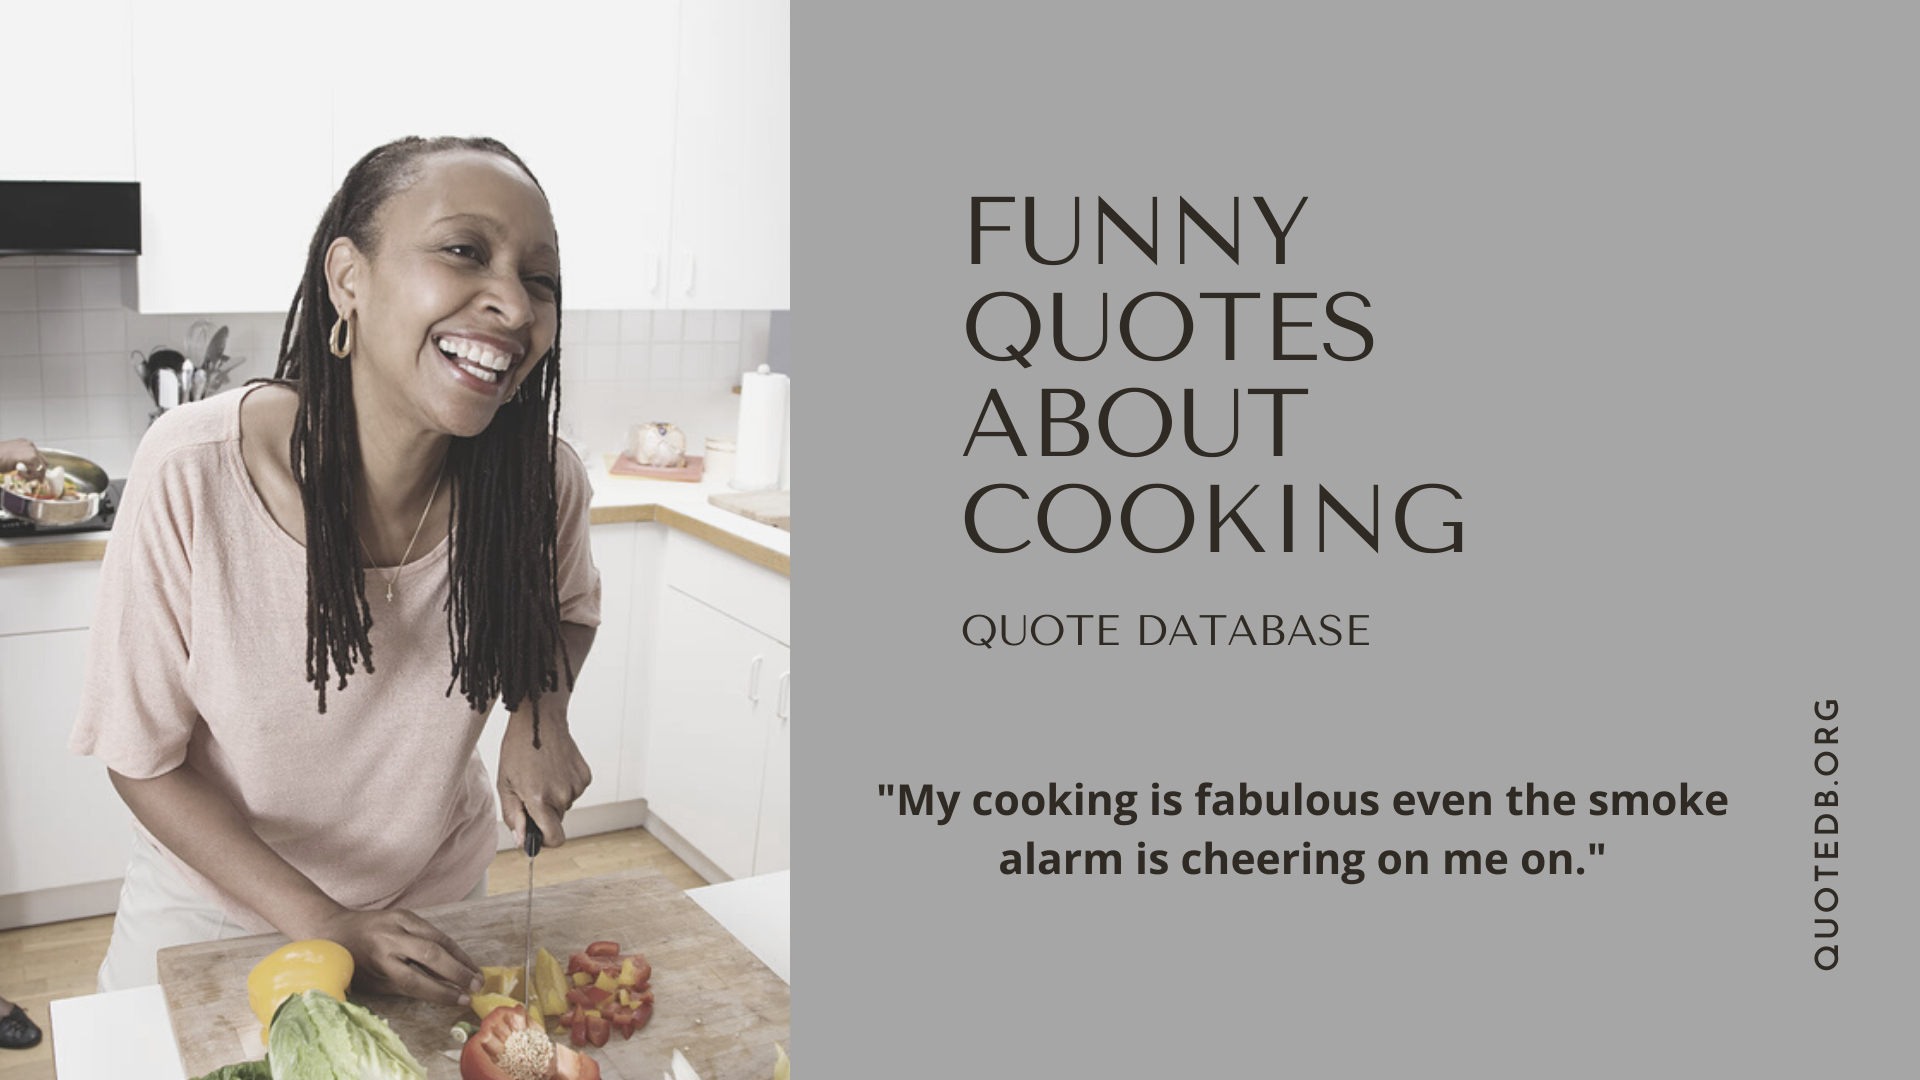 Funny Cooking Quotes In 2020 Cooking Quotes Humor Cooking Quotes Cooking Humor